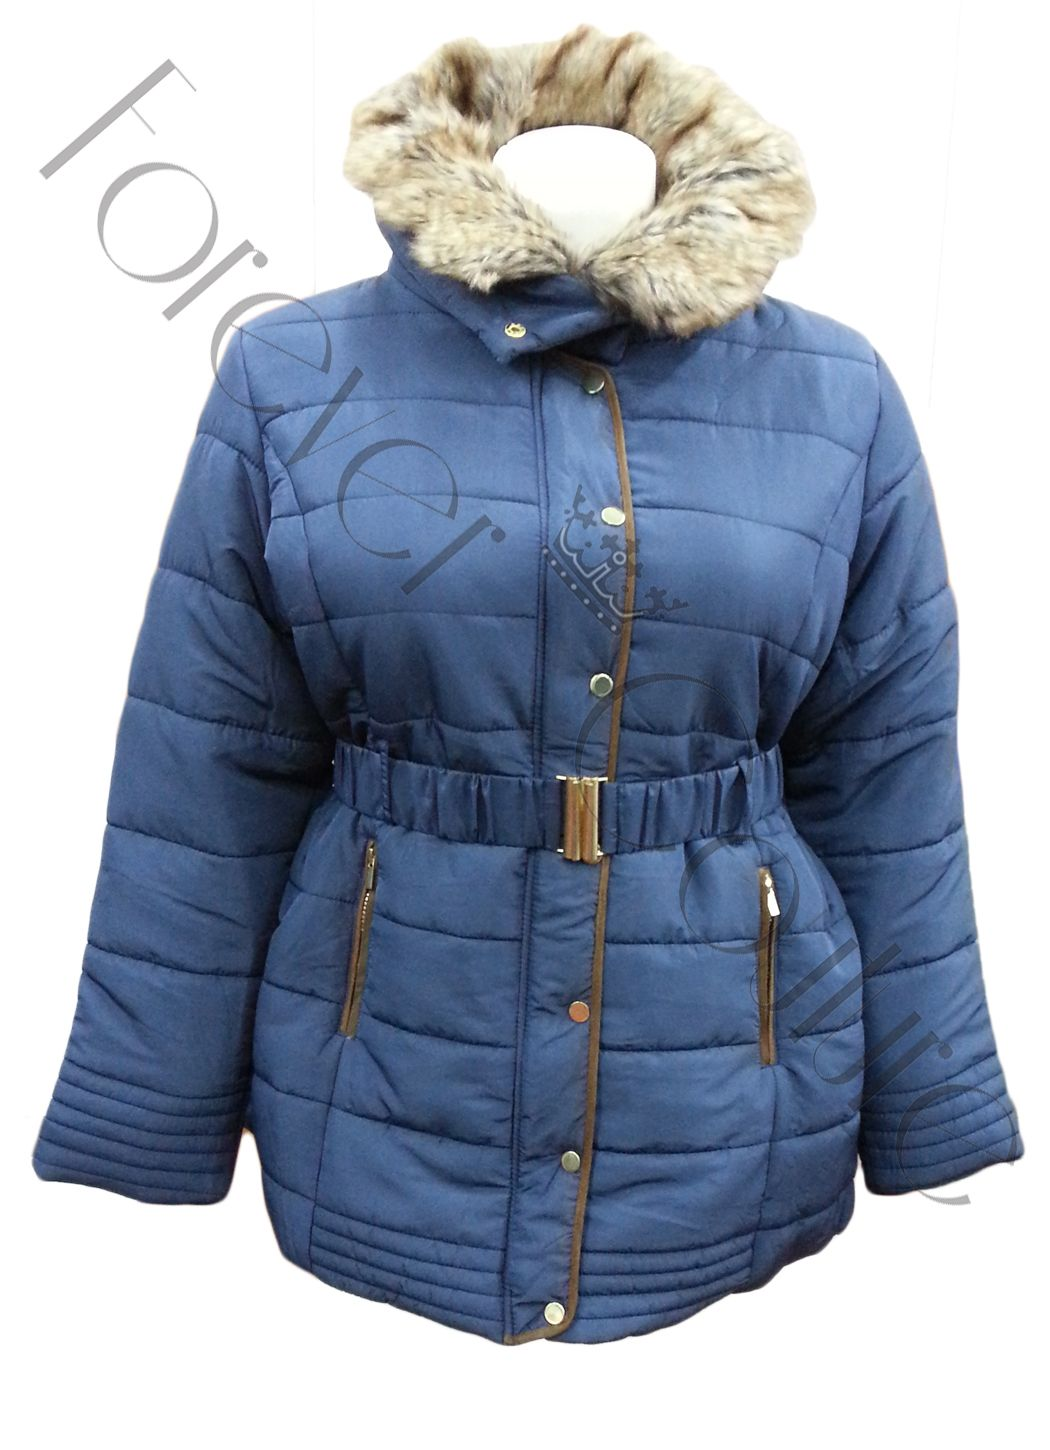 BLUE PADDED 3/4 COAT FUR COLLAR AND HOOD   Pack of 9 Pieces£26.00 per Piece VAT: 0%  FC